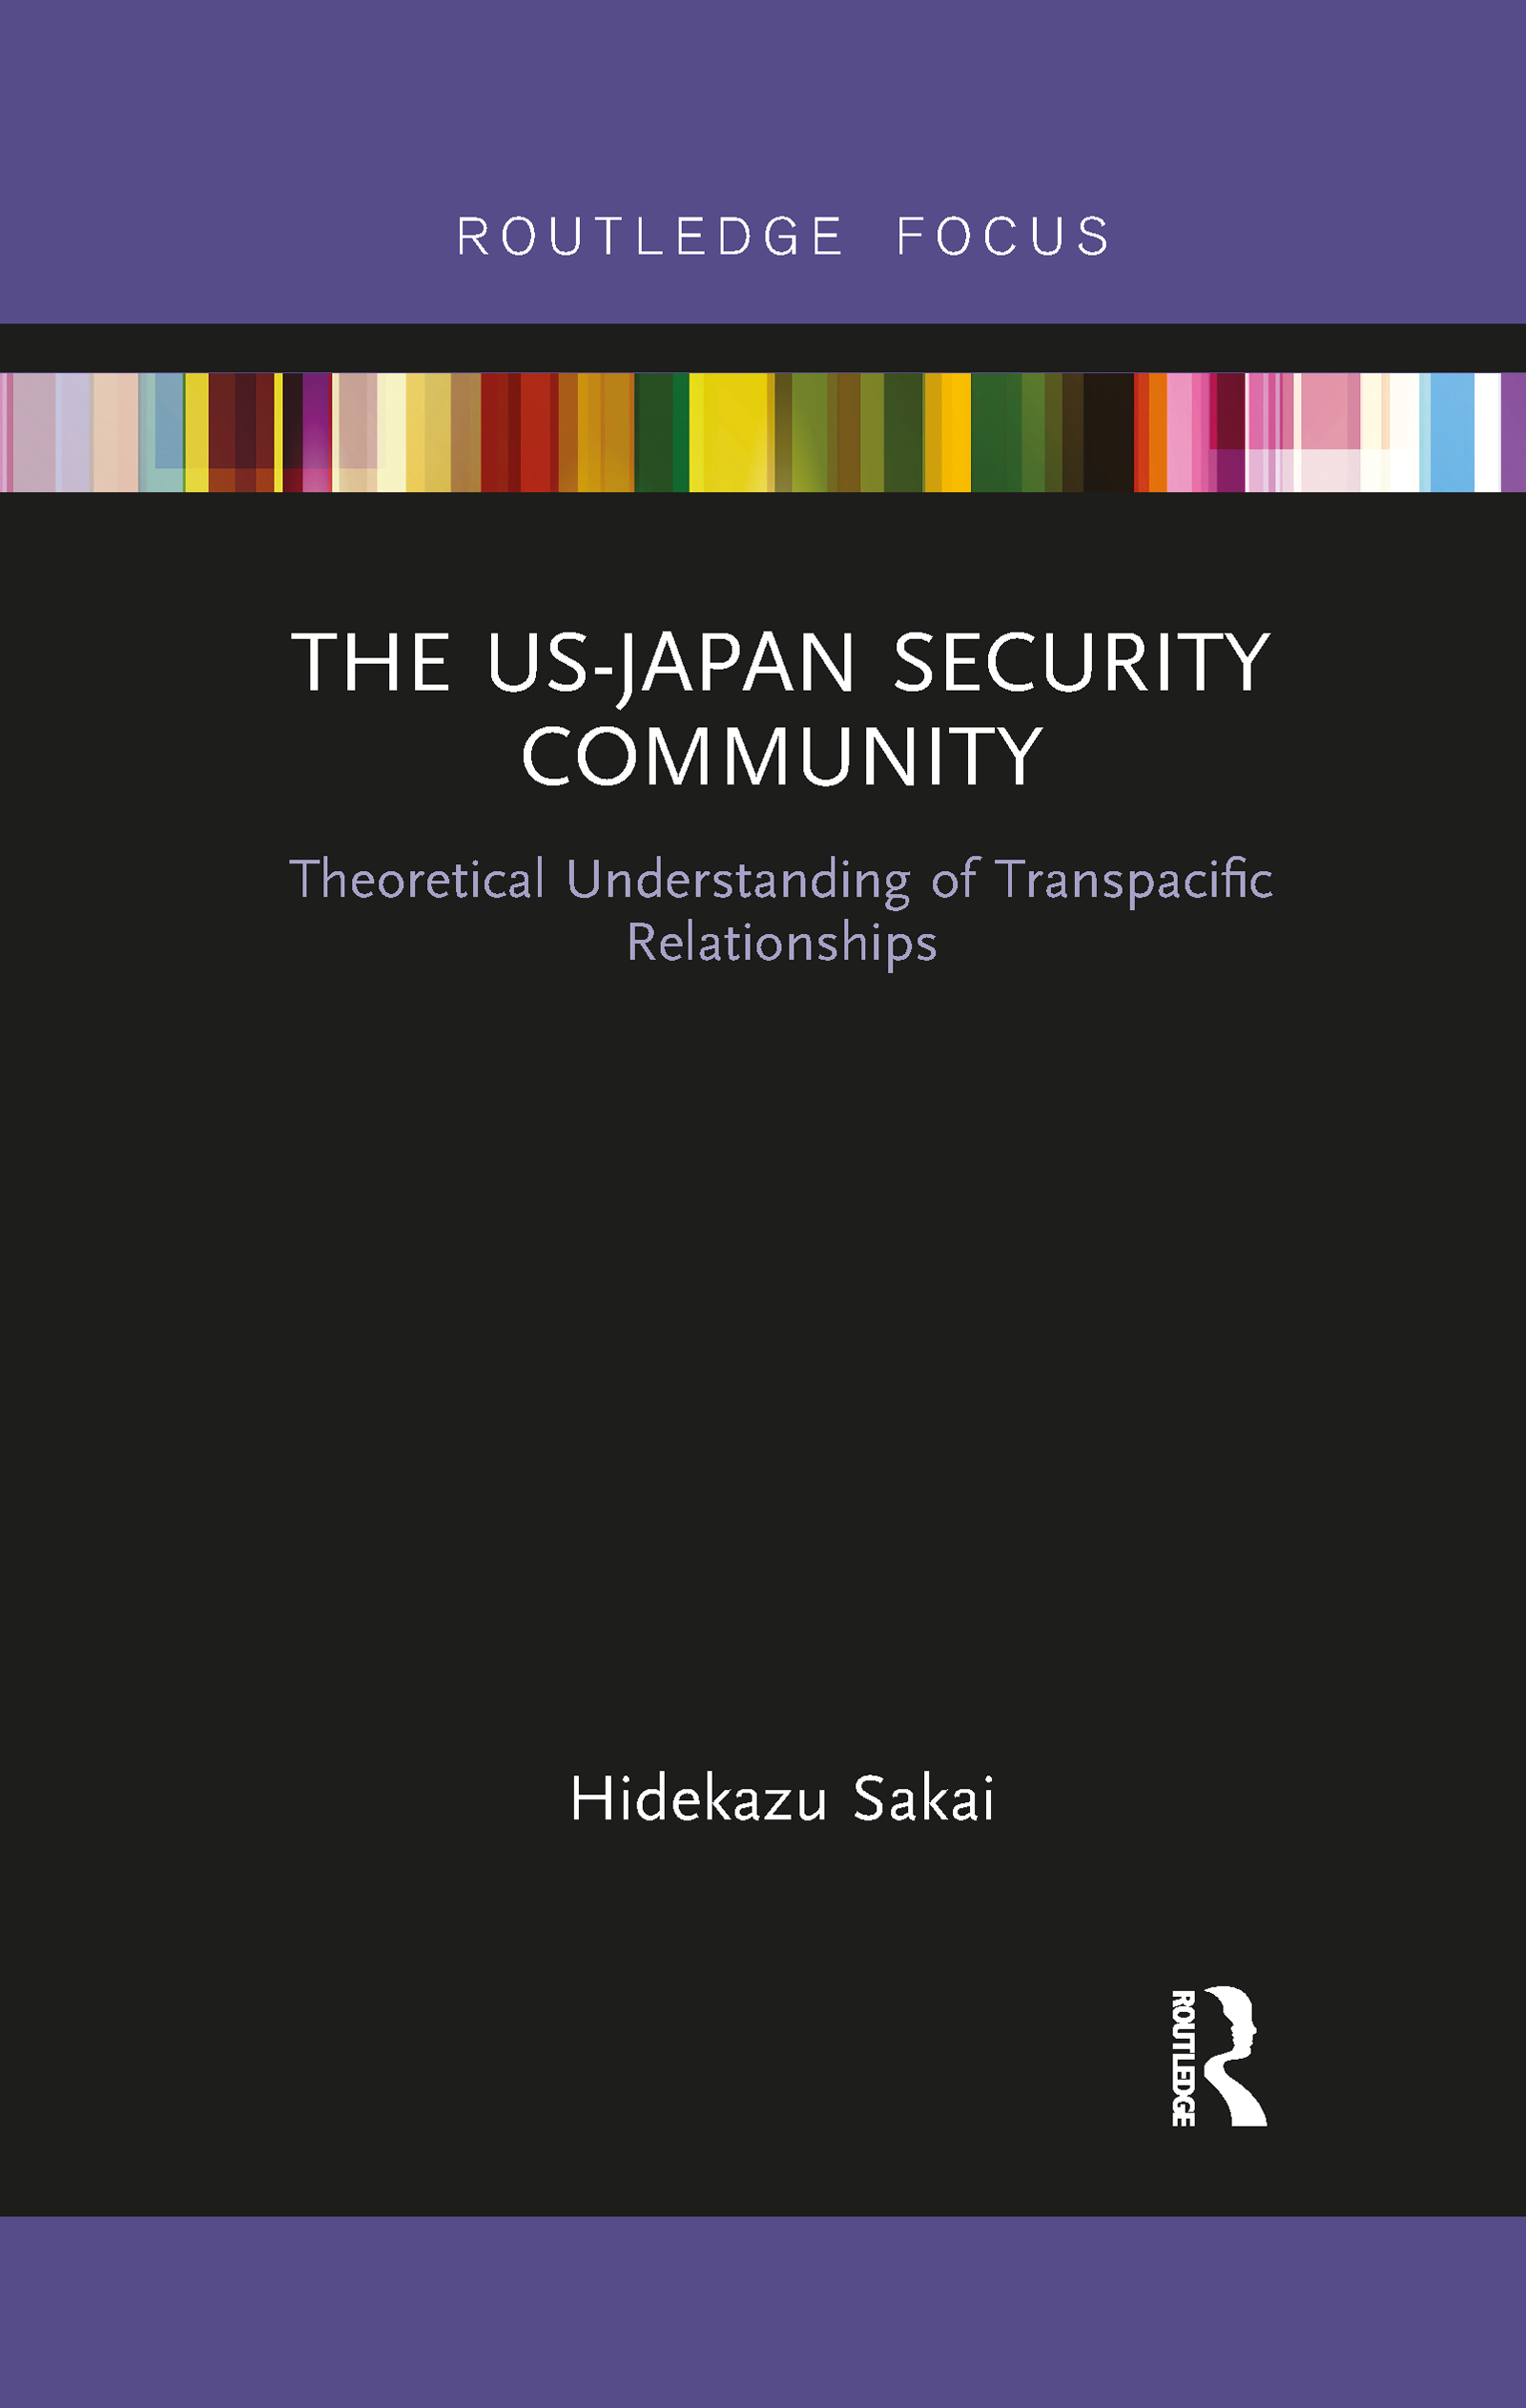 The US-Japan Security Community